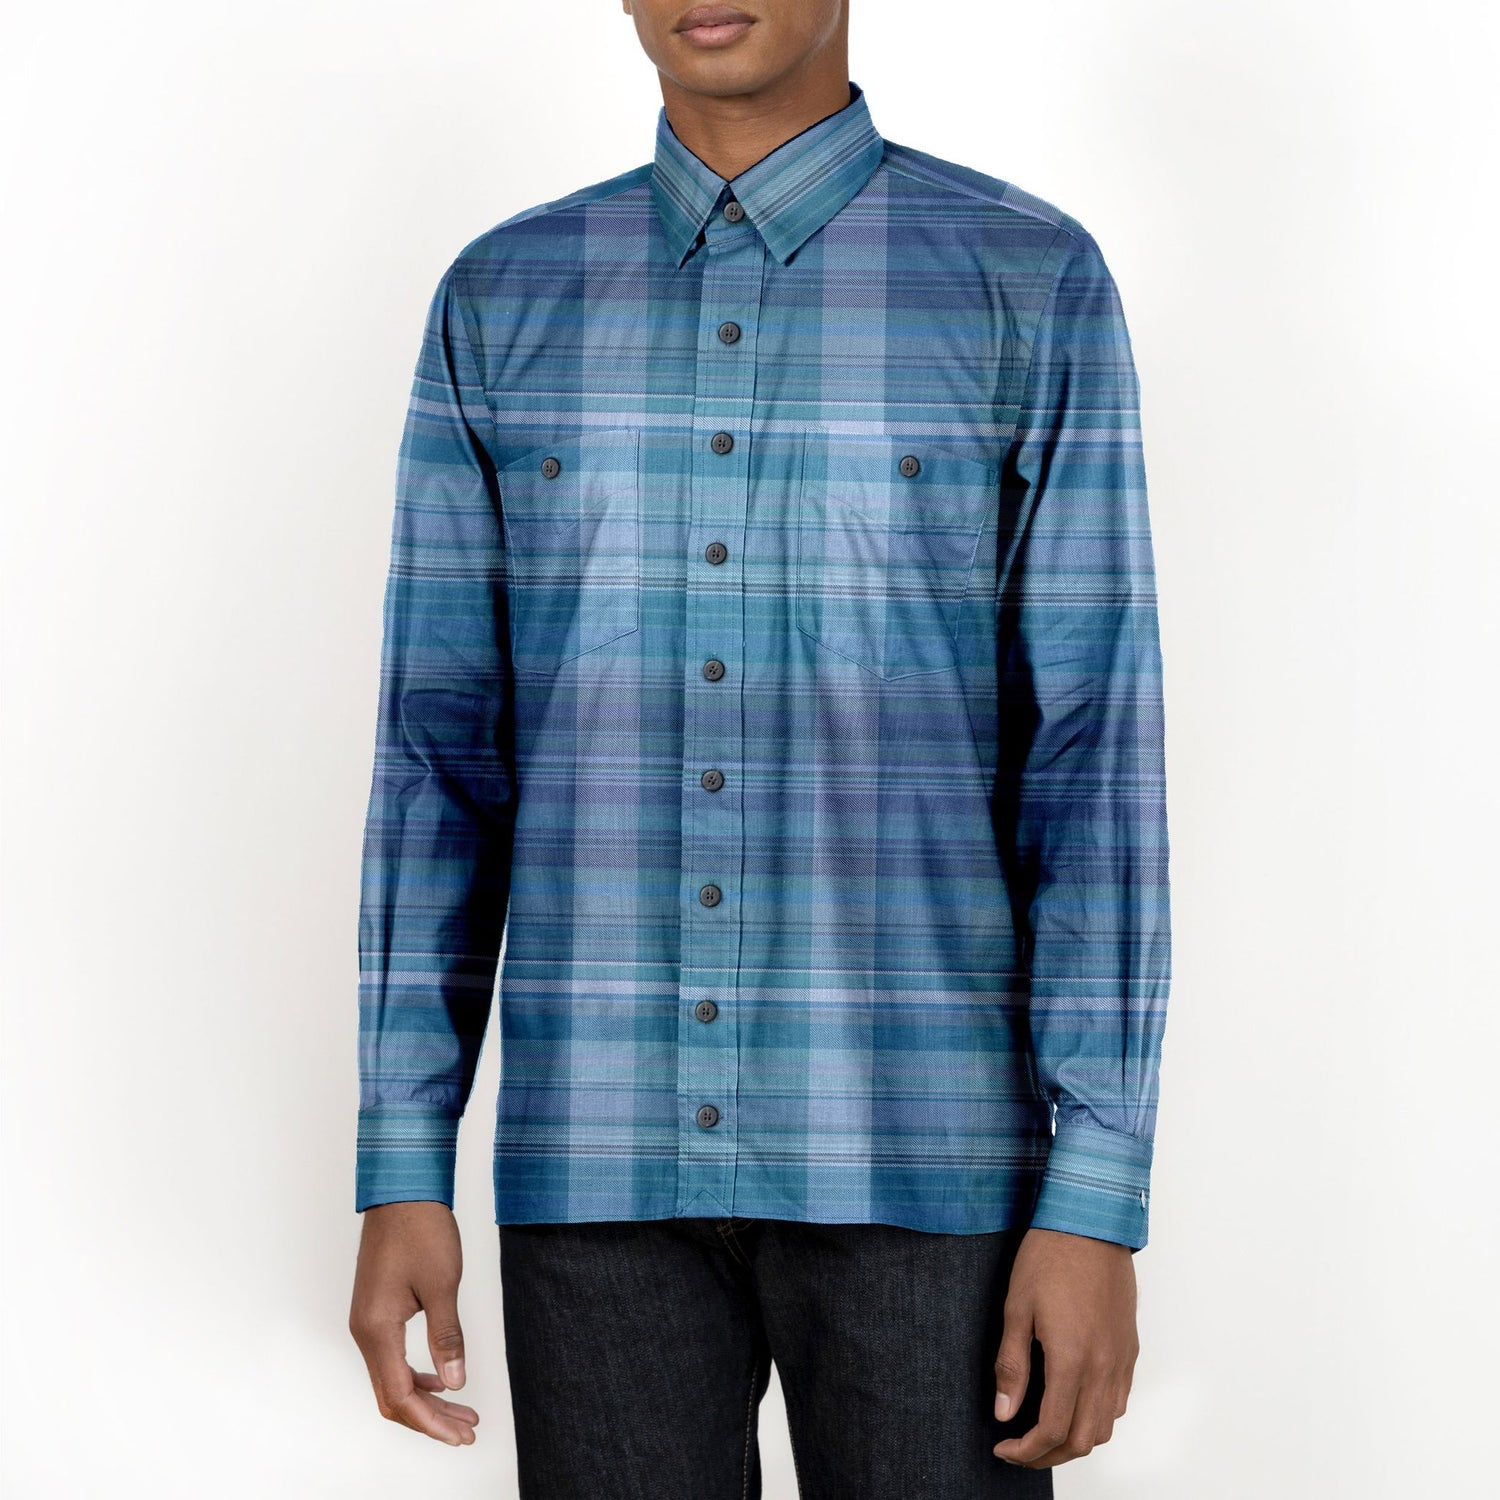 The Nowhere Plaid Long Sleeve Shirt